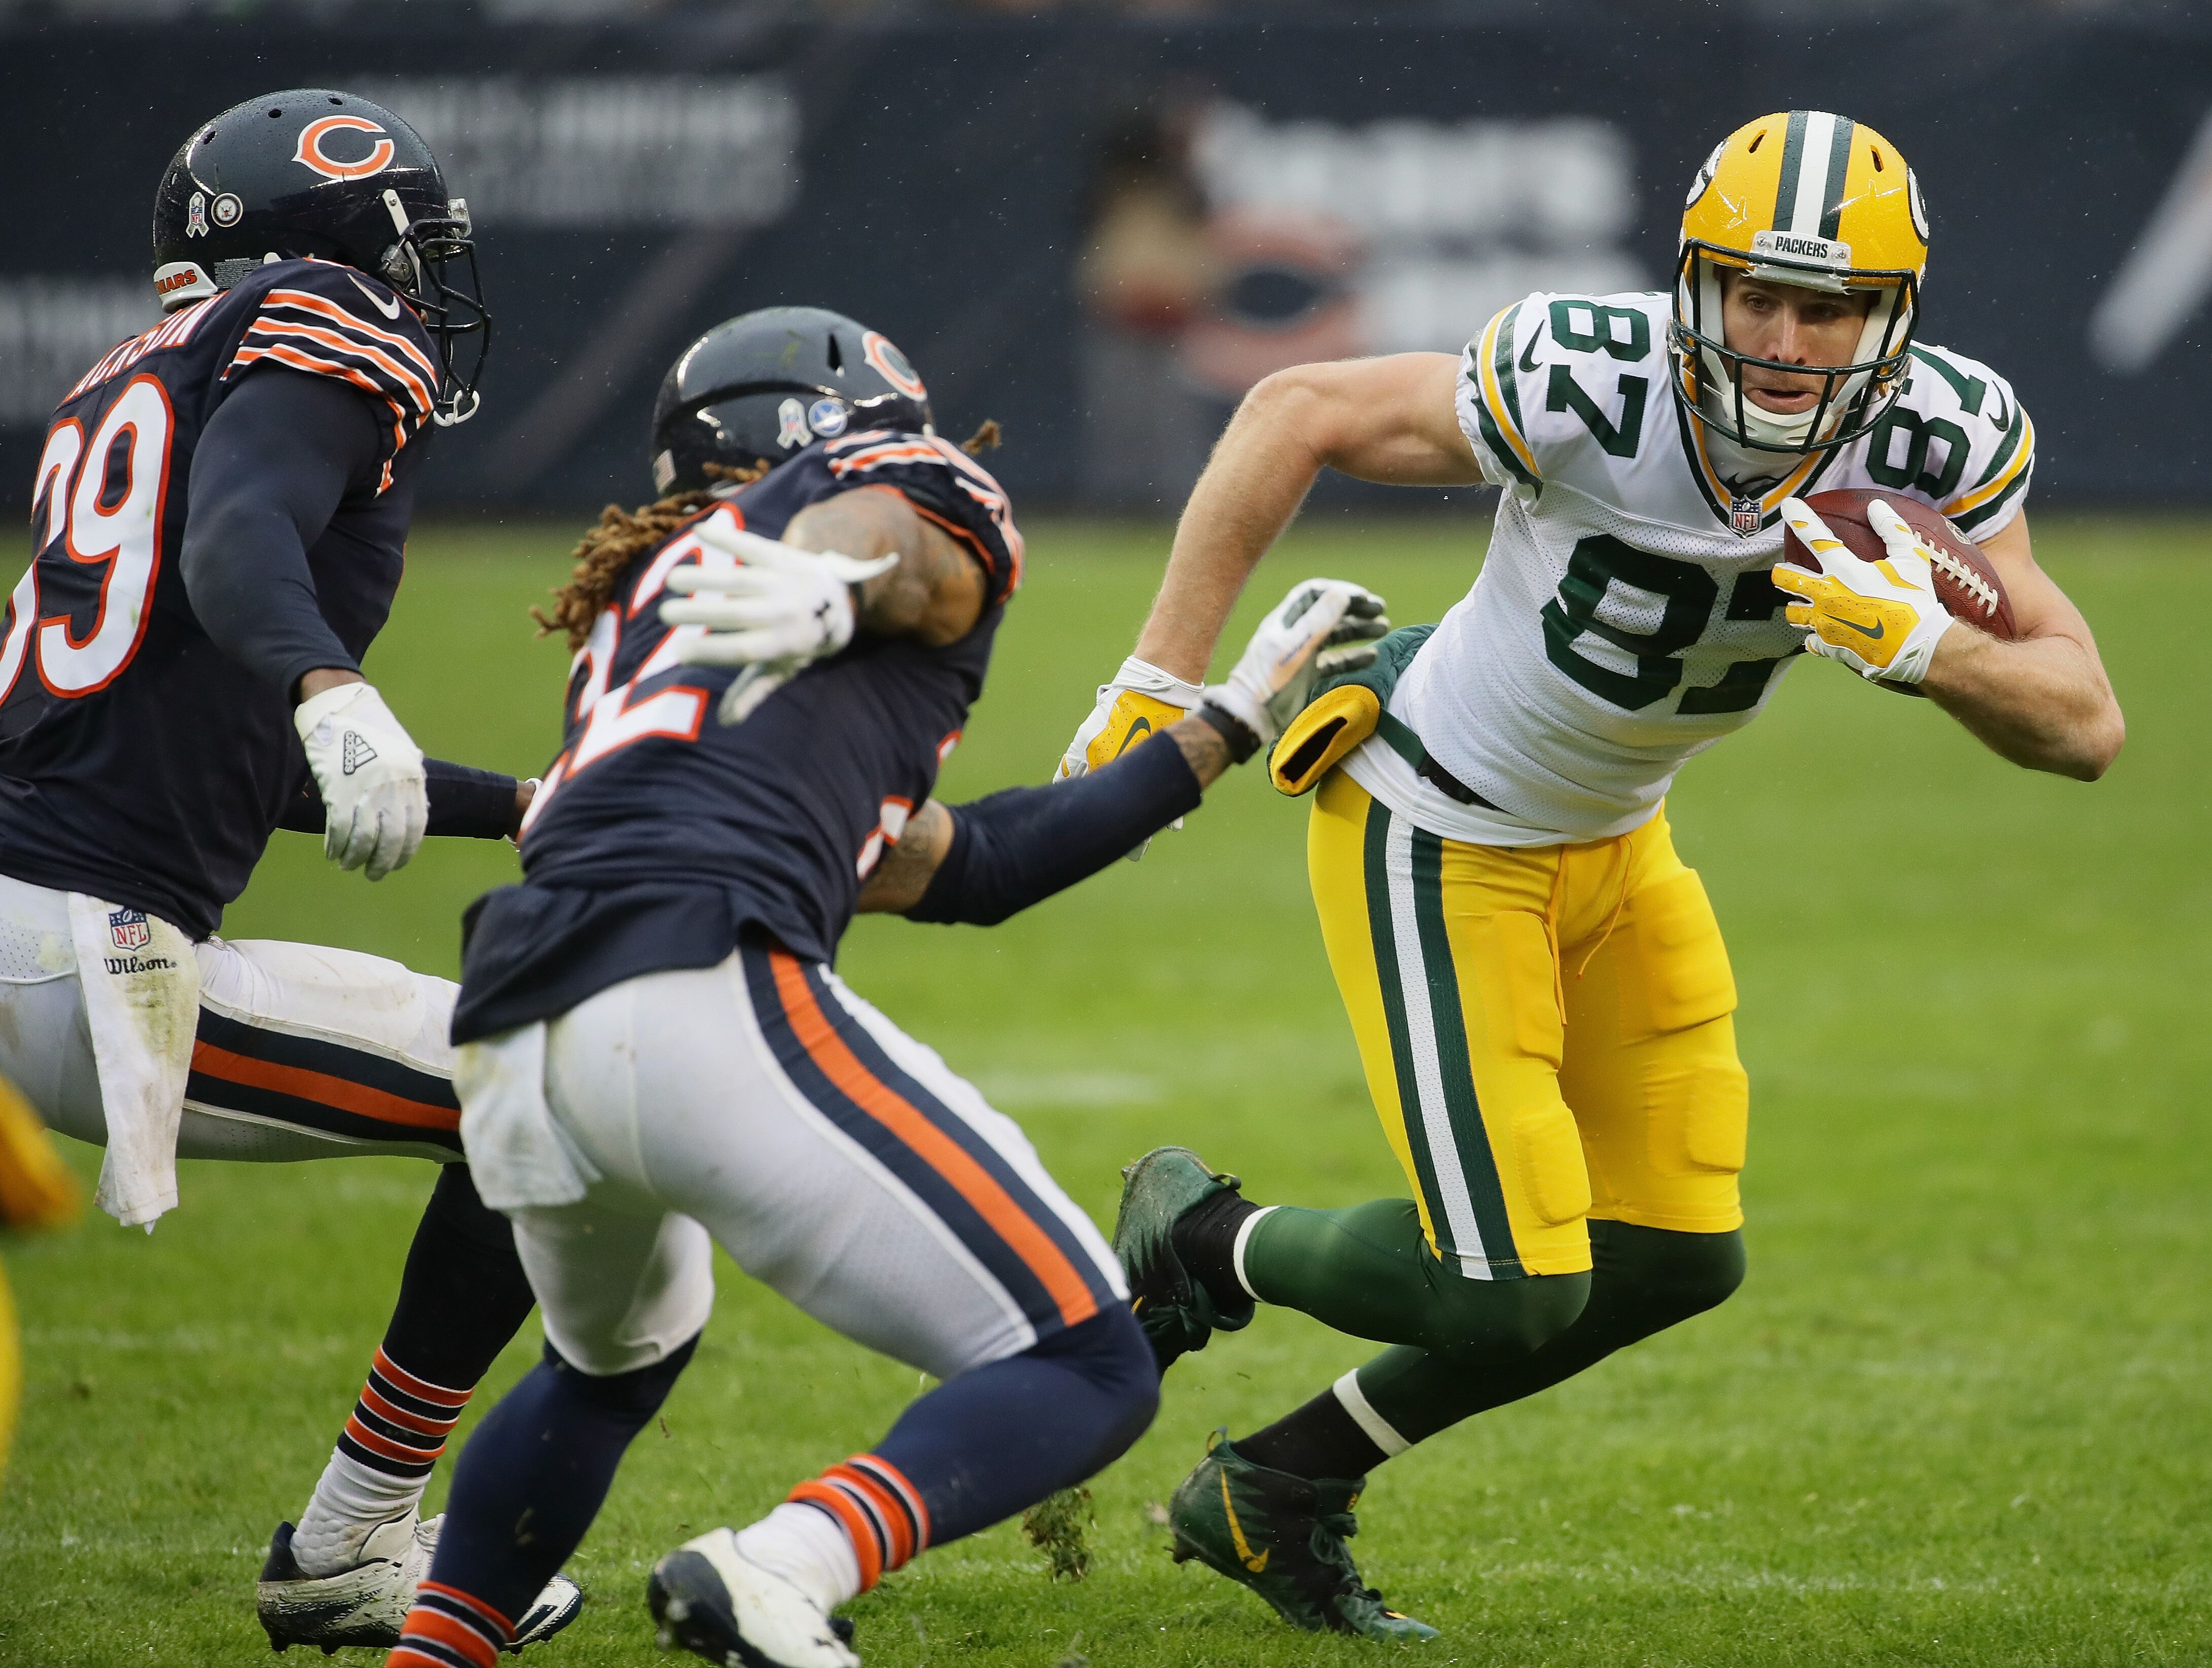 873349320-green-bay-packers-v-chicago-bears.jpg